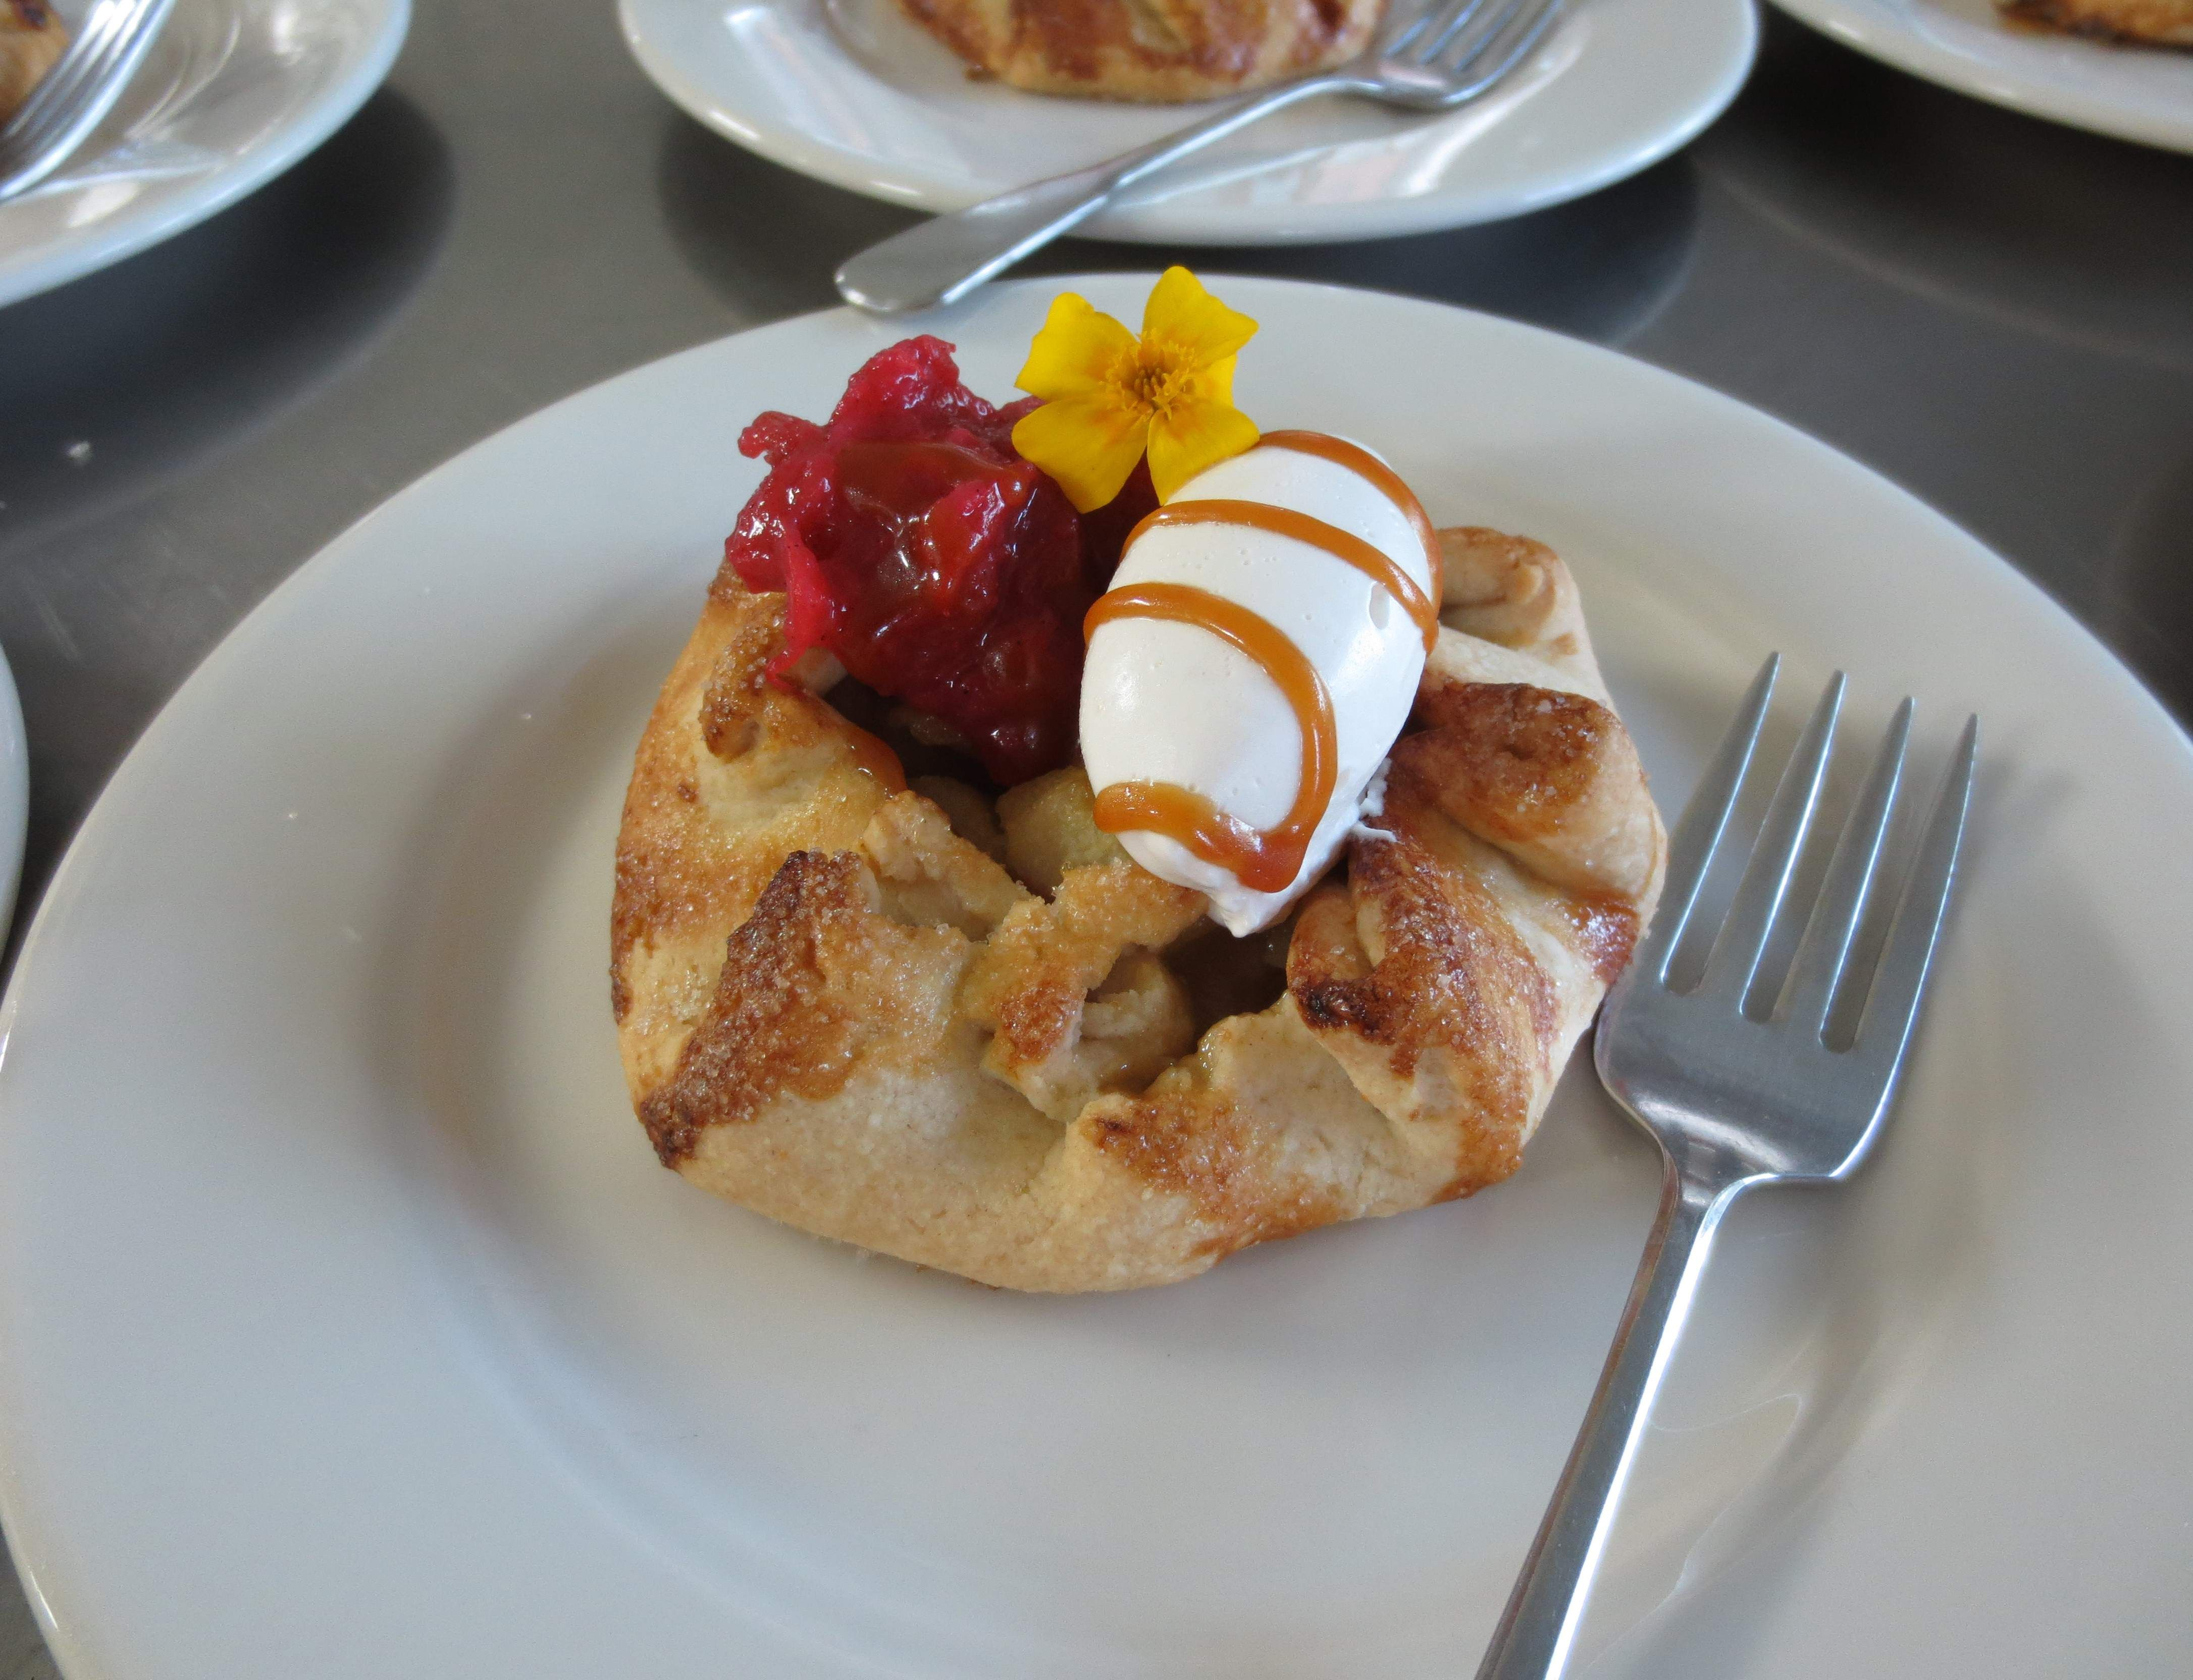 Pear Gallette topped with Rhubarb Compote, whipped cream, marigolds grown in our greenhouse and drizzled with Alaska Birch Syrup Caramel Sauce.